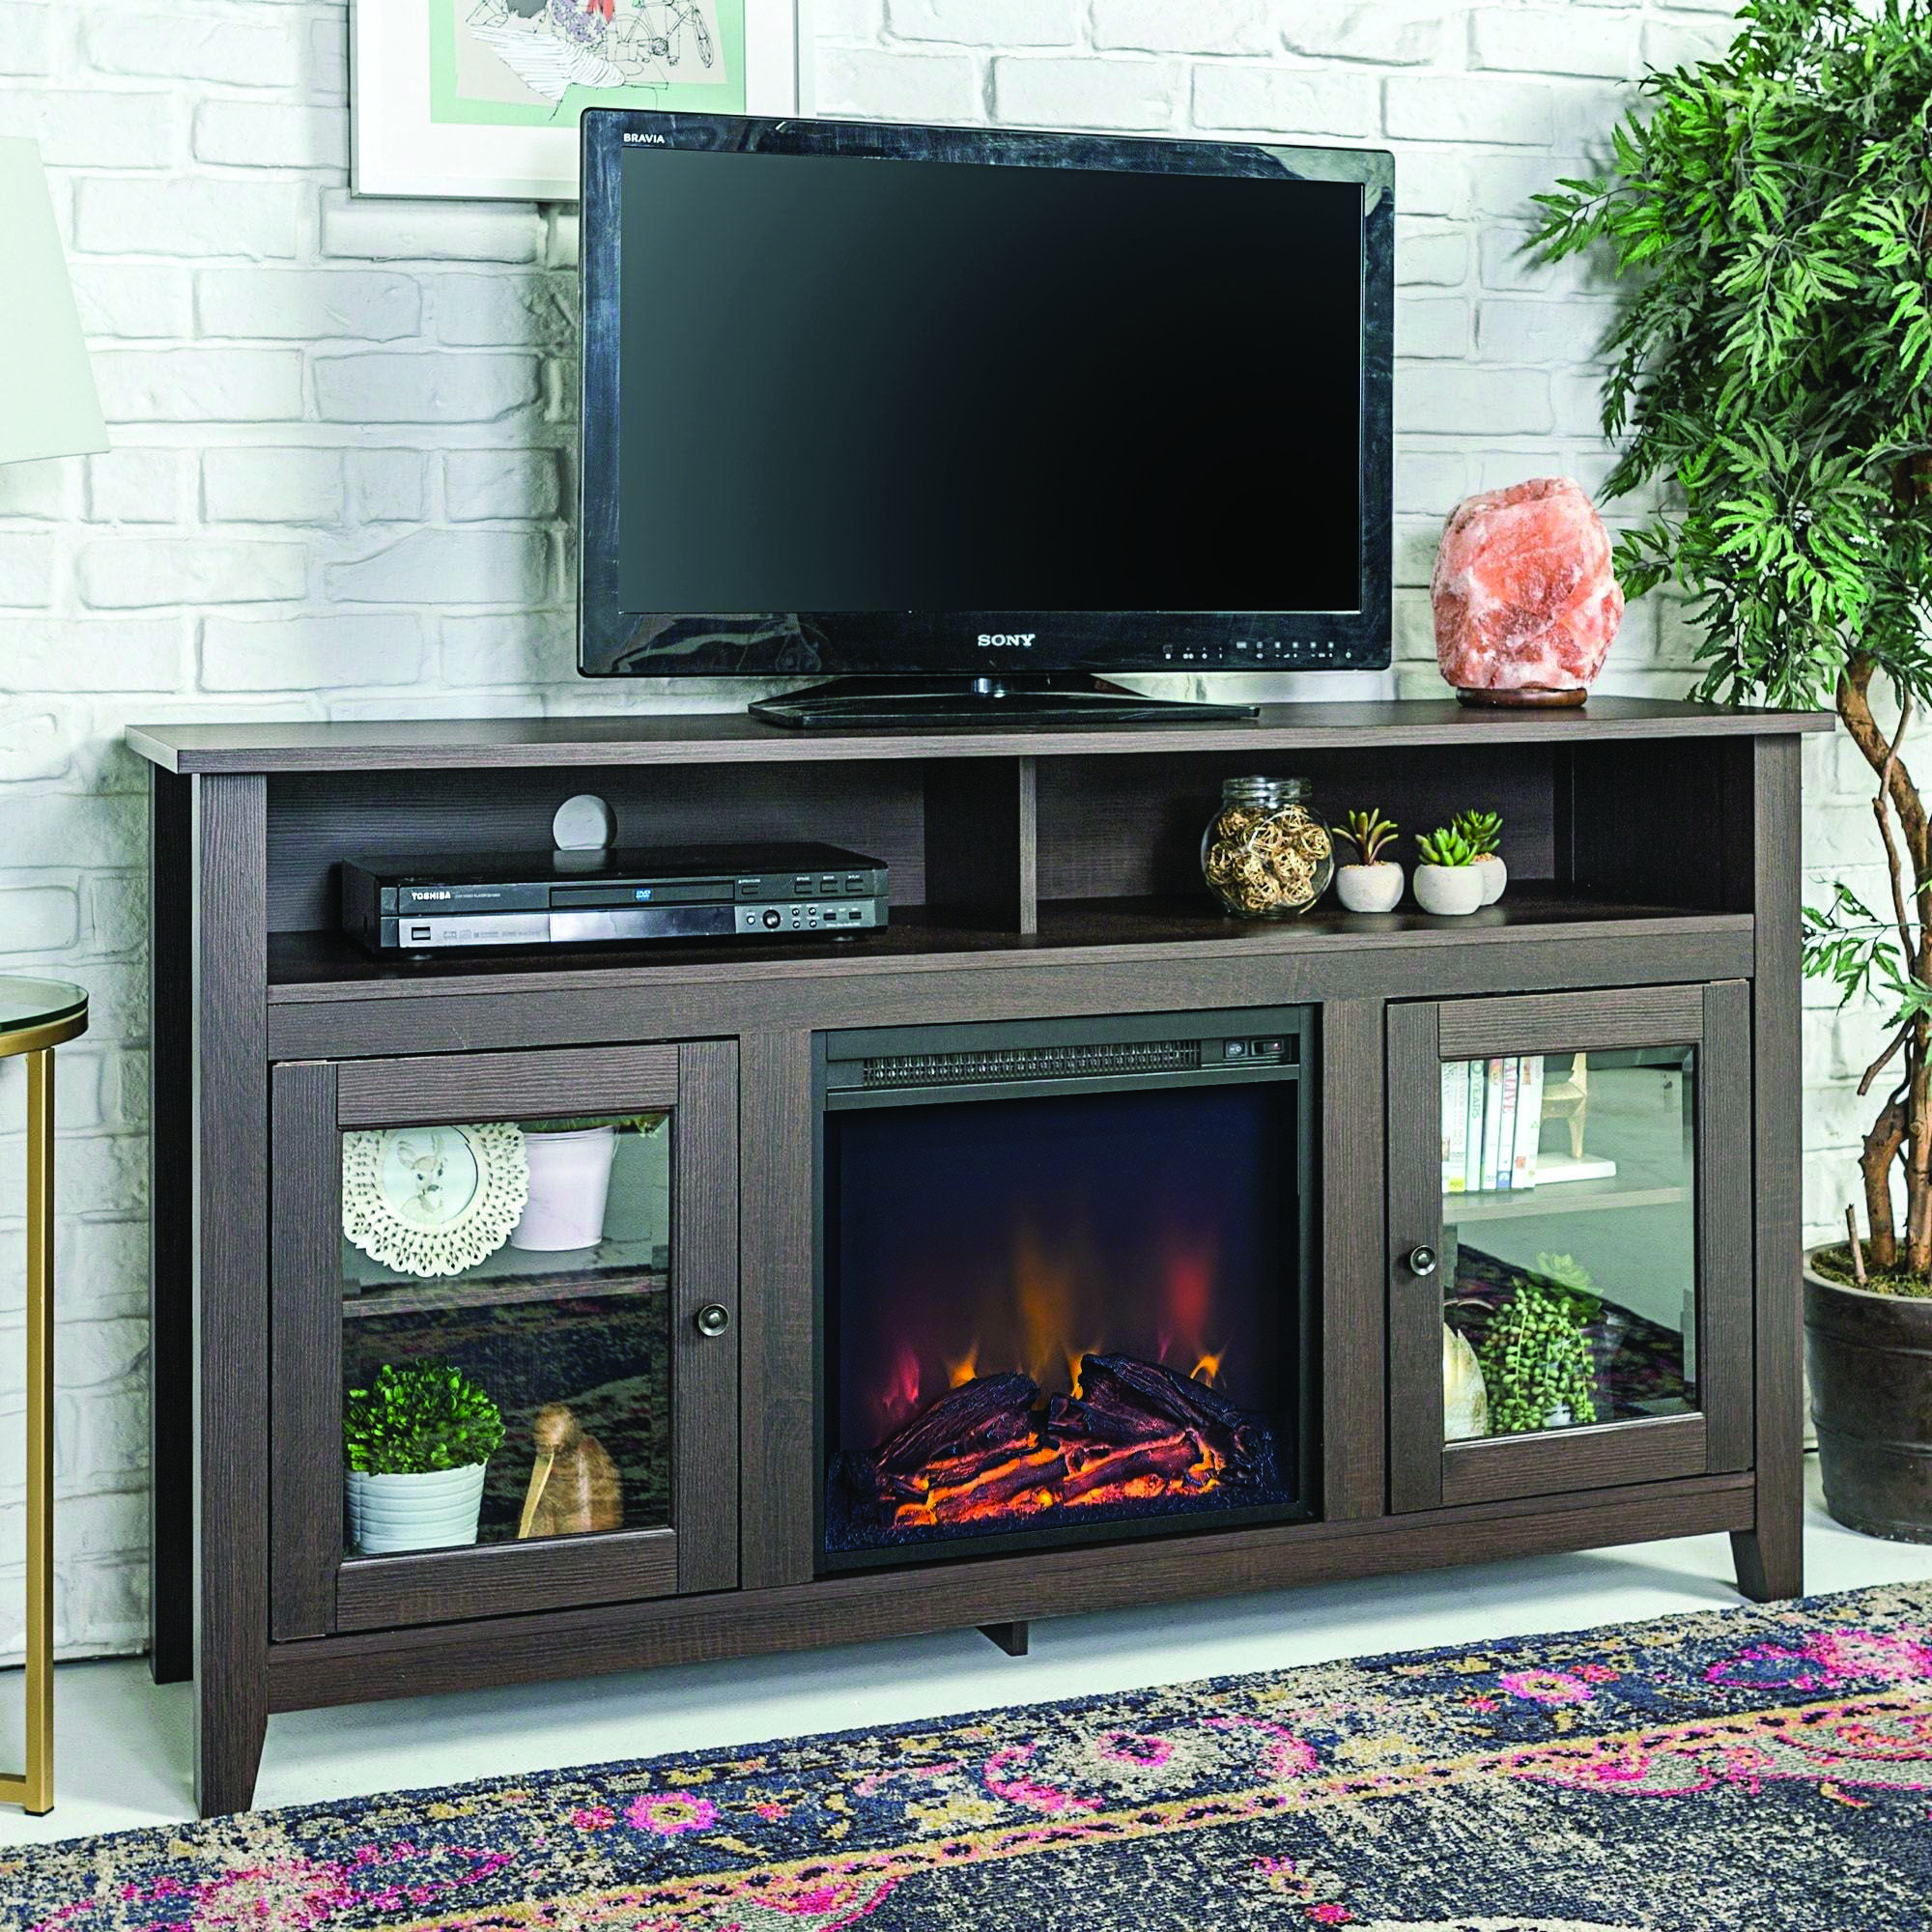 Incredible Fireplace Tv Stand Costco Uk You Ll Love Fireplace Entertainment Center Entertainment Center